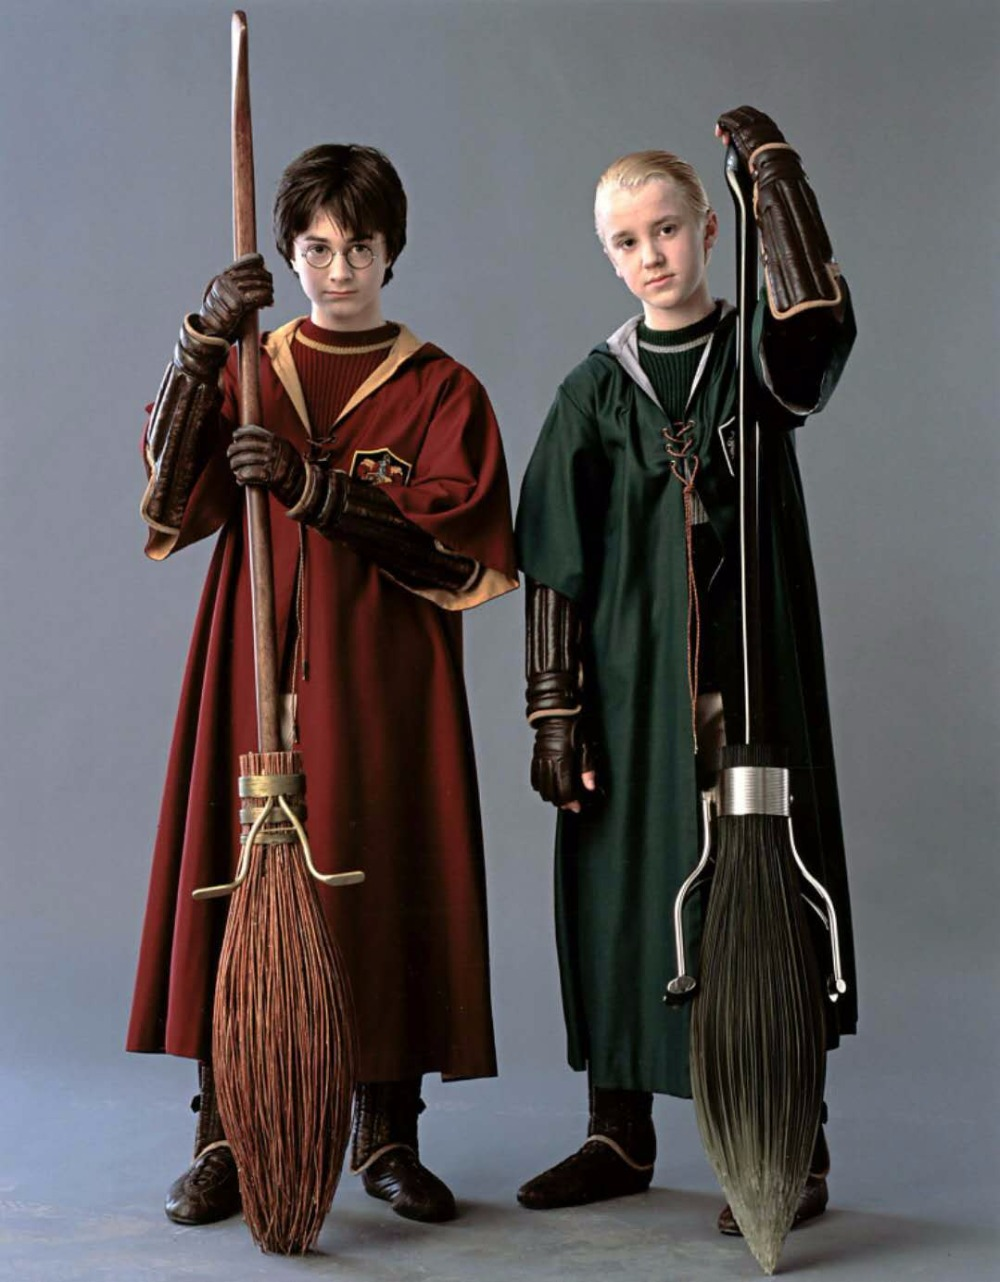 Adult Uniforms Capes Gryffindor Slytherin Cloak Cosplay Costume Halloween party Costume